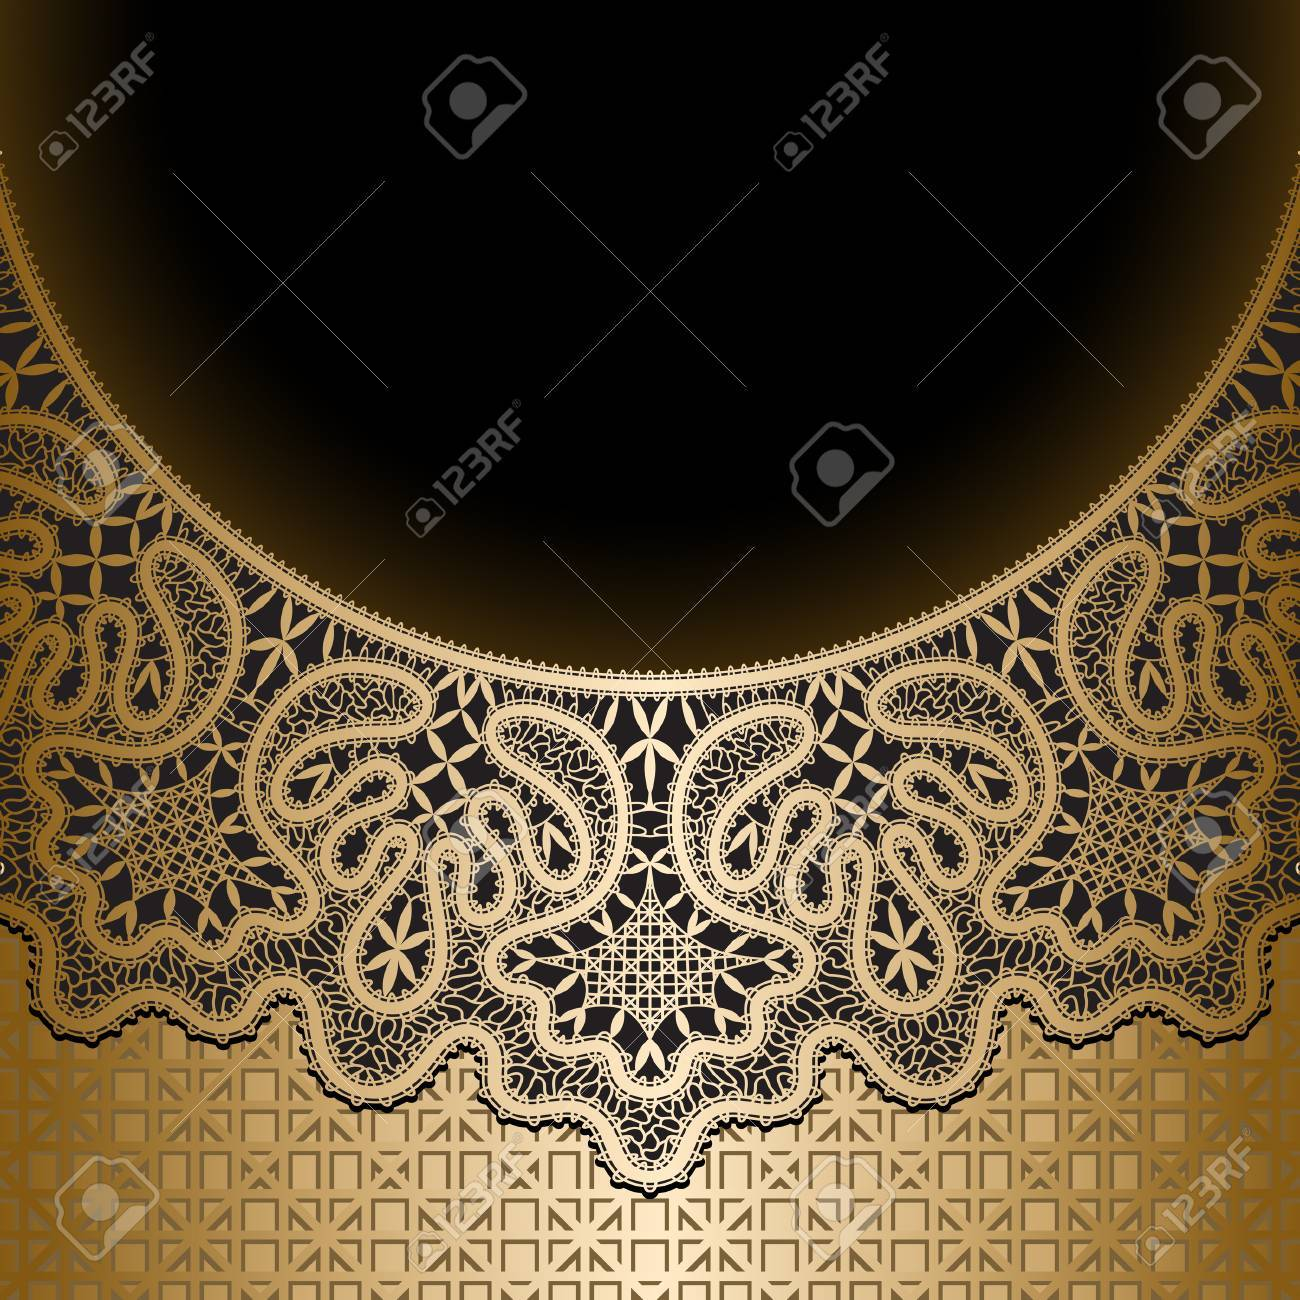 Vintage gold lace background Stock Vector - 22474136